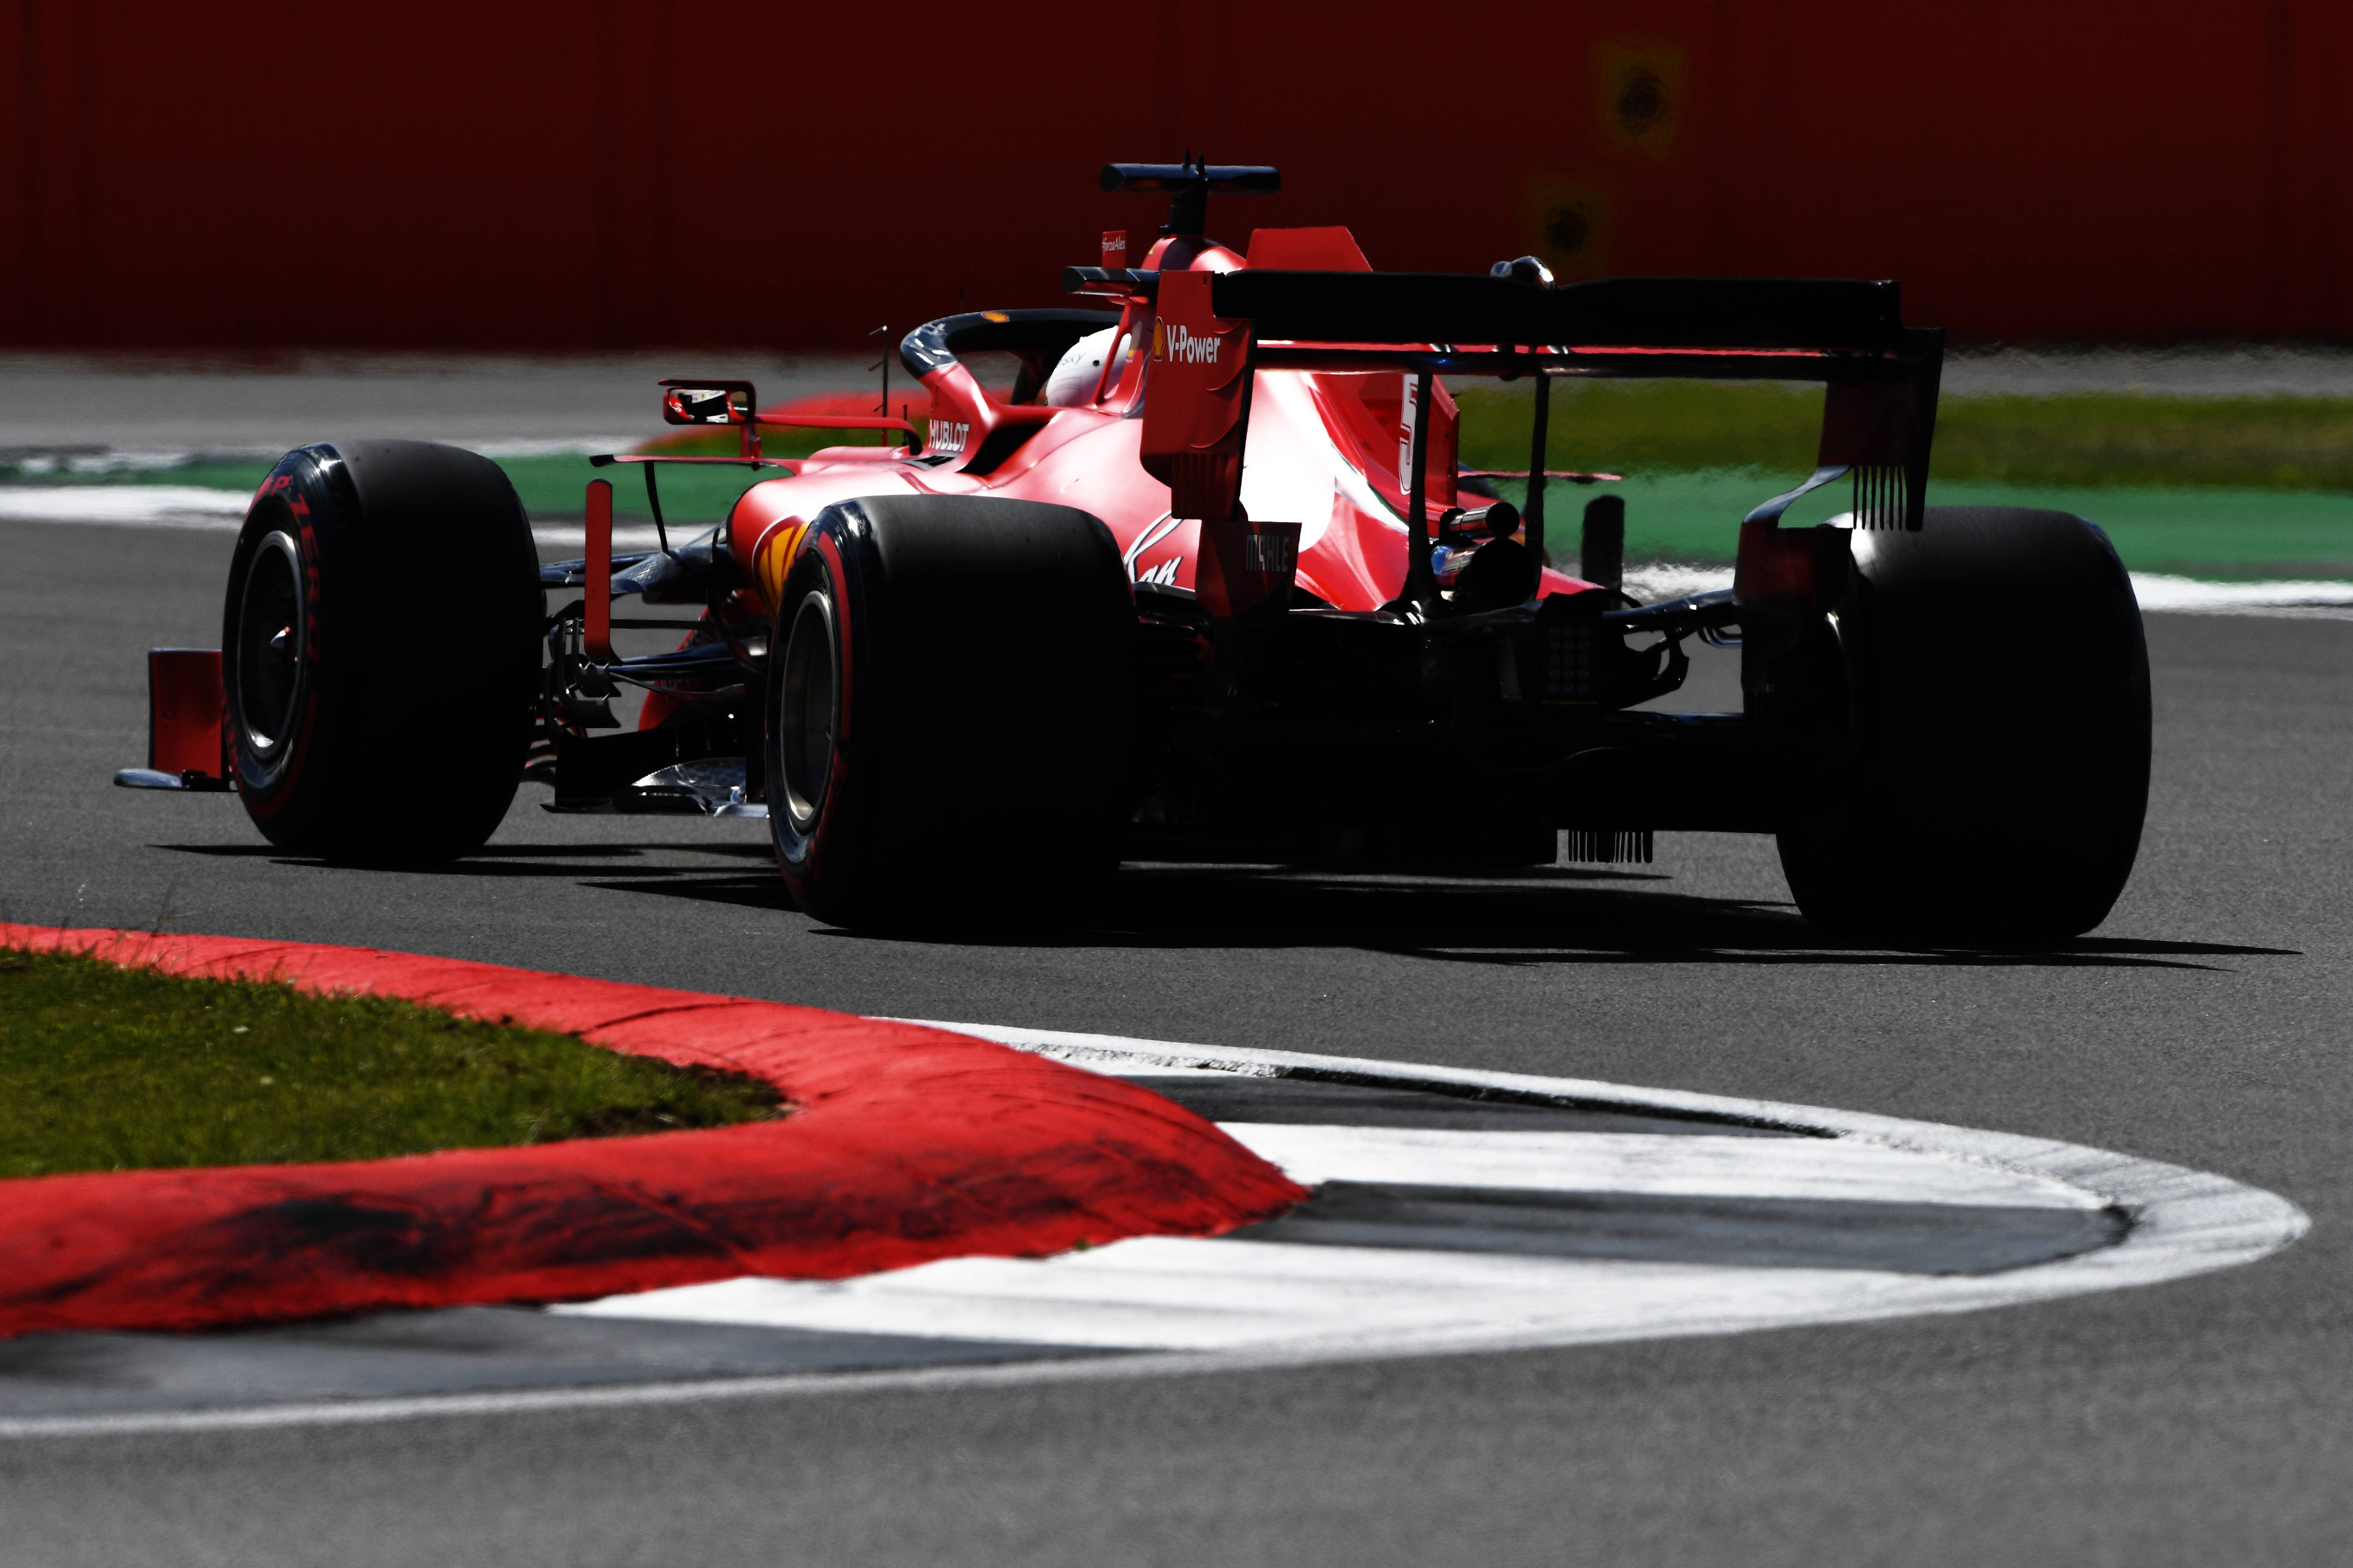 NORTHAMPTON, ENGLAND - AUGUST 01: Sebastian Vettel of Germany driving the (5) Scuderia Ferrari SF1000 on track during qualifying for the F1 Grand Prix of Great Britain at Silverstone on August 01, 2020 in Northampton, England. (Photo by Rudy Carezzevoli/Getty Images)